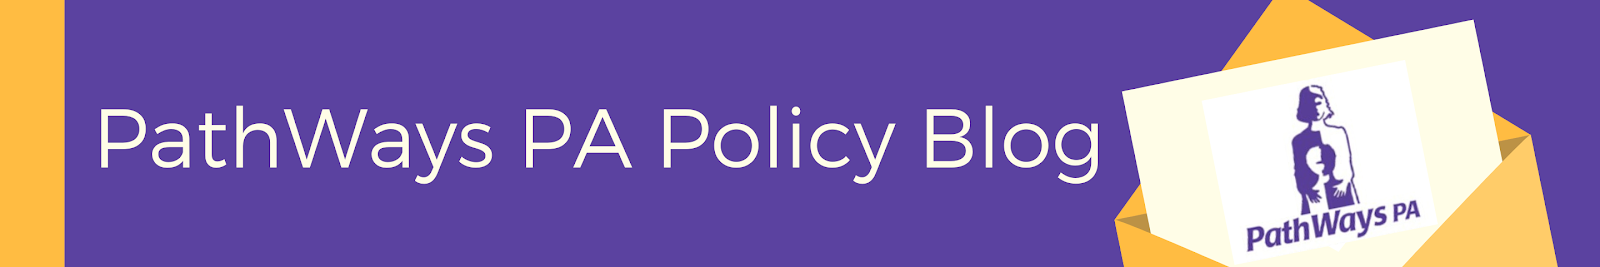 PathWays PA Policy Blog